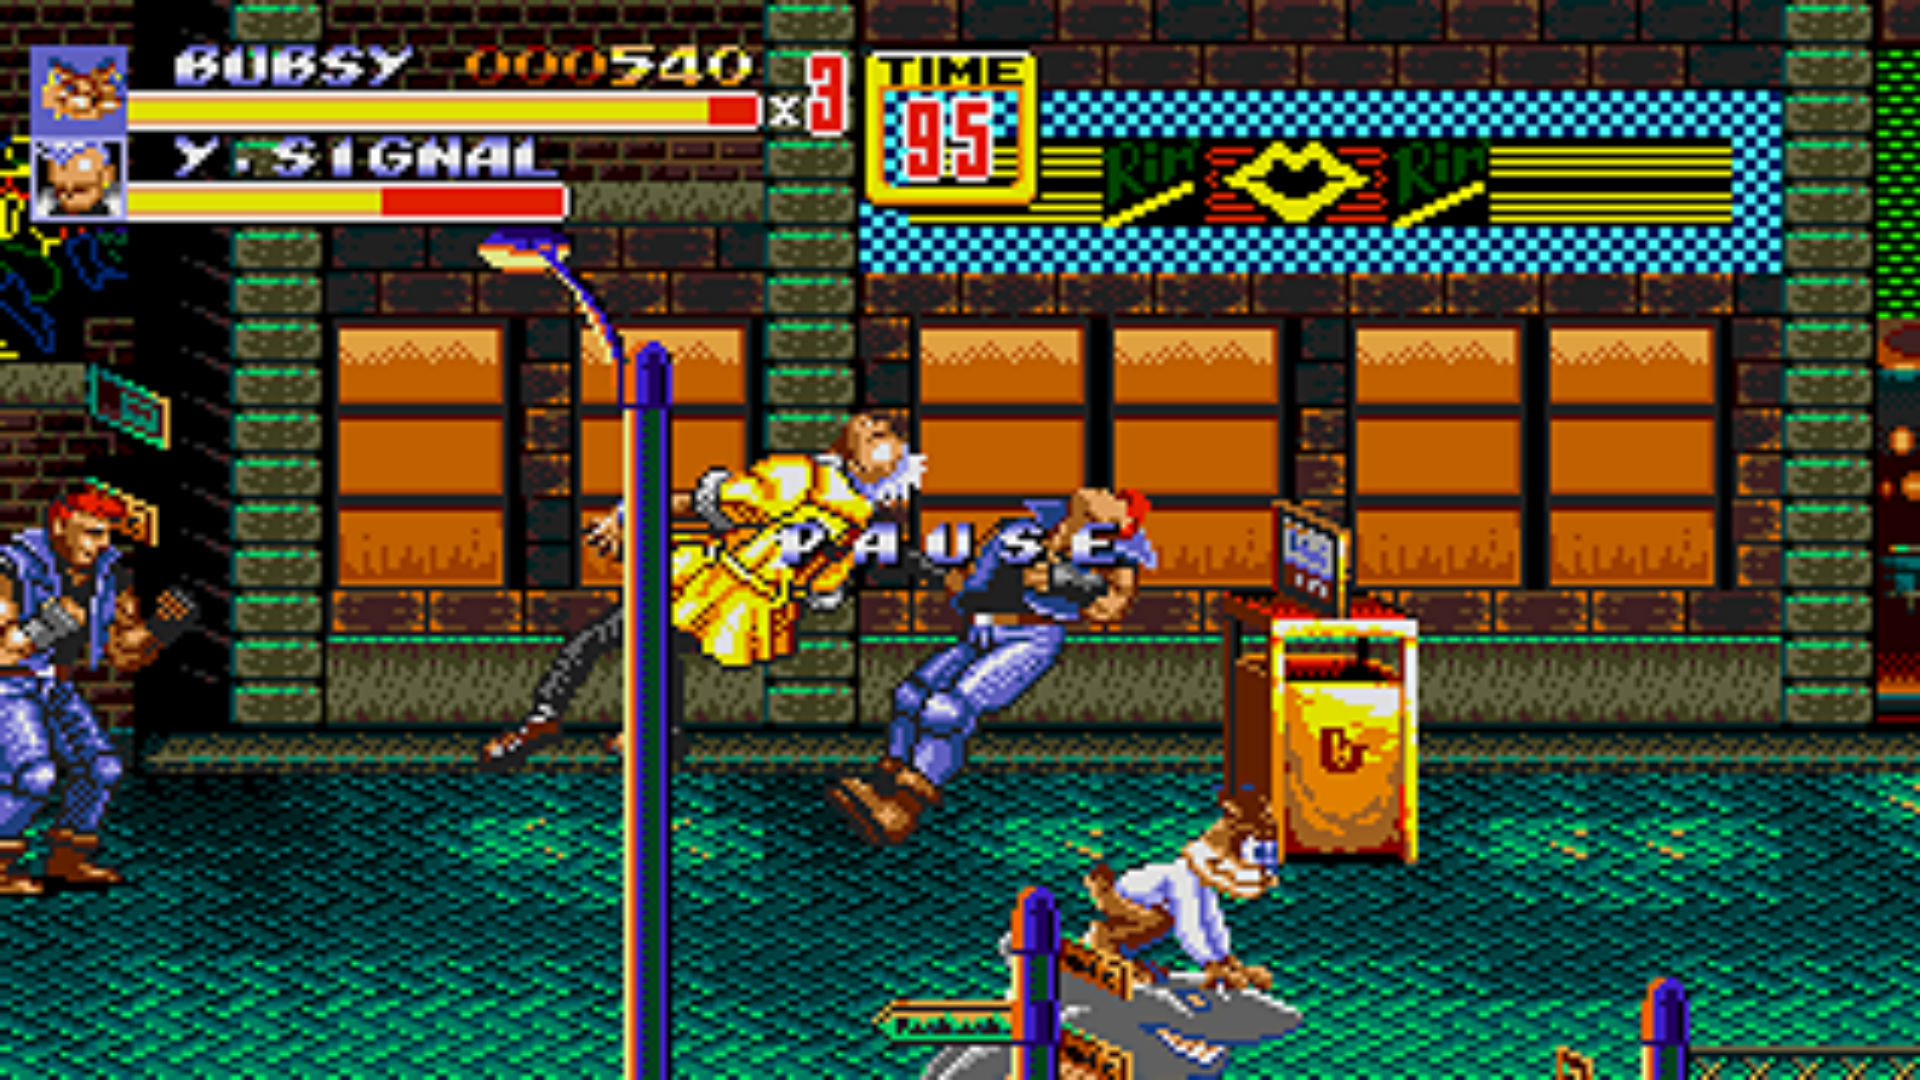 Some Mad Genius Hacked Bubsy Into Streets Of Rage 2